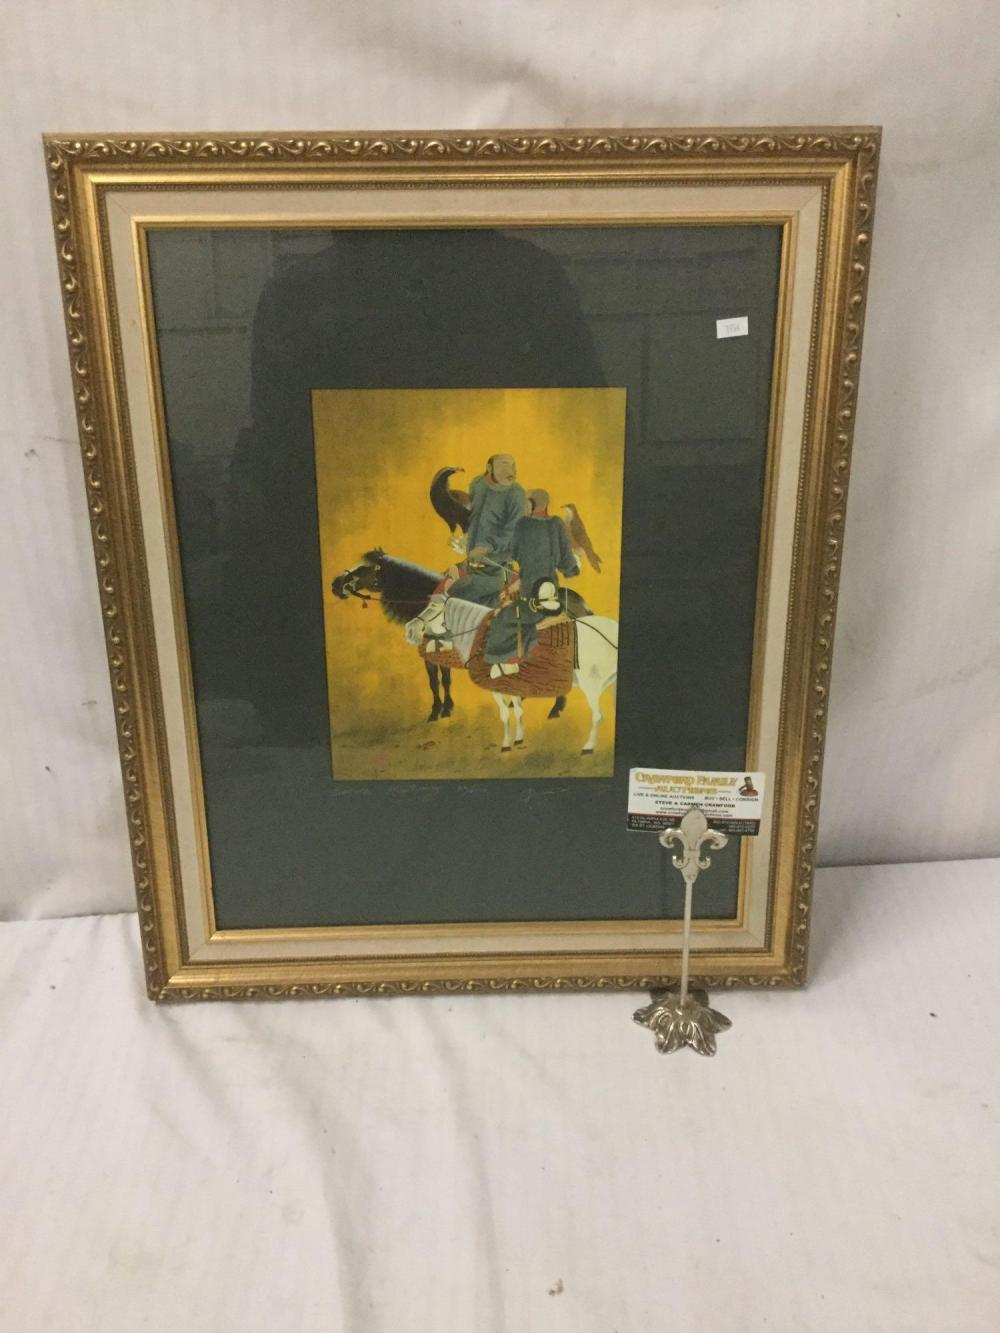 Lot 252: David Wang - Before Hunting - Print, signed and Numbered 22/750 in wood frame